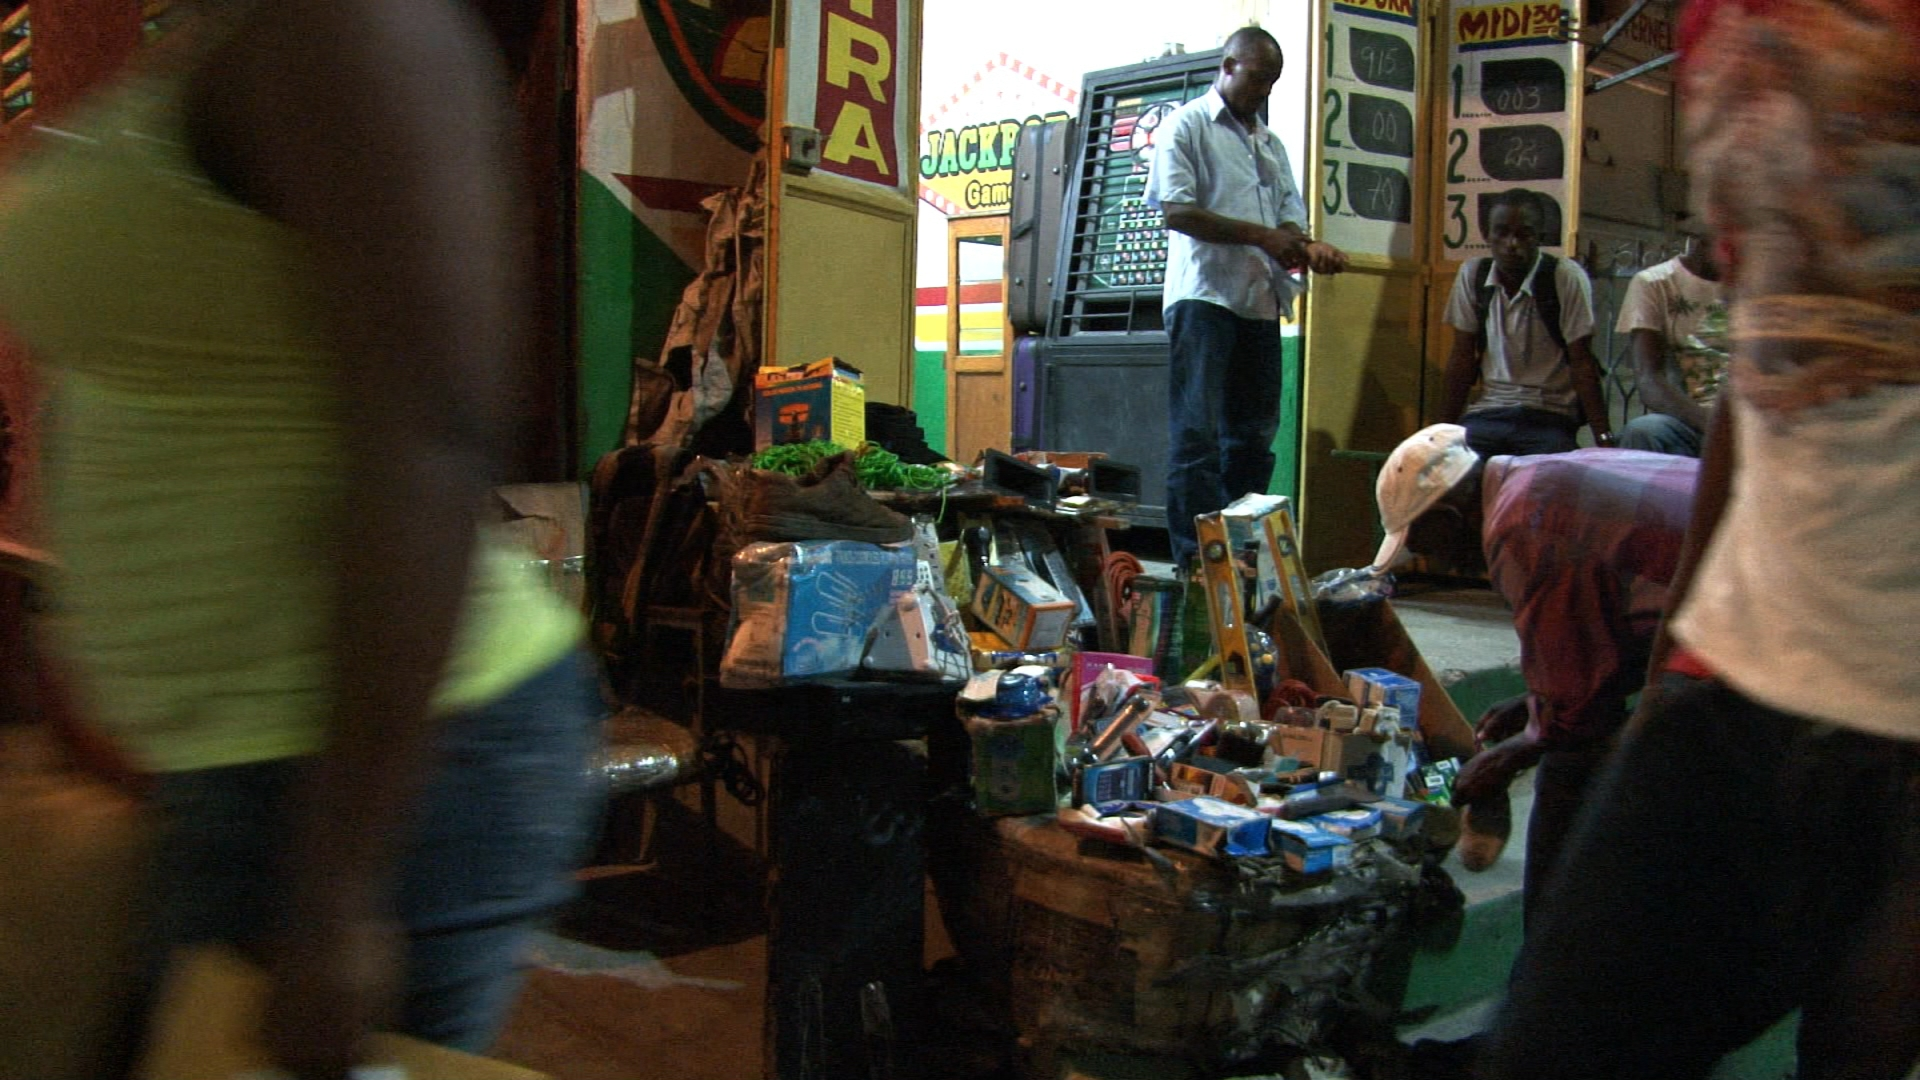 Film 8, Day 8 of 10: Understand Haiti from the Perspective of Haitian Street Vendors